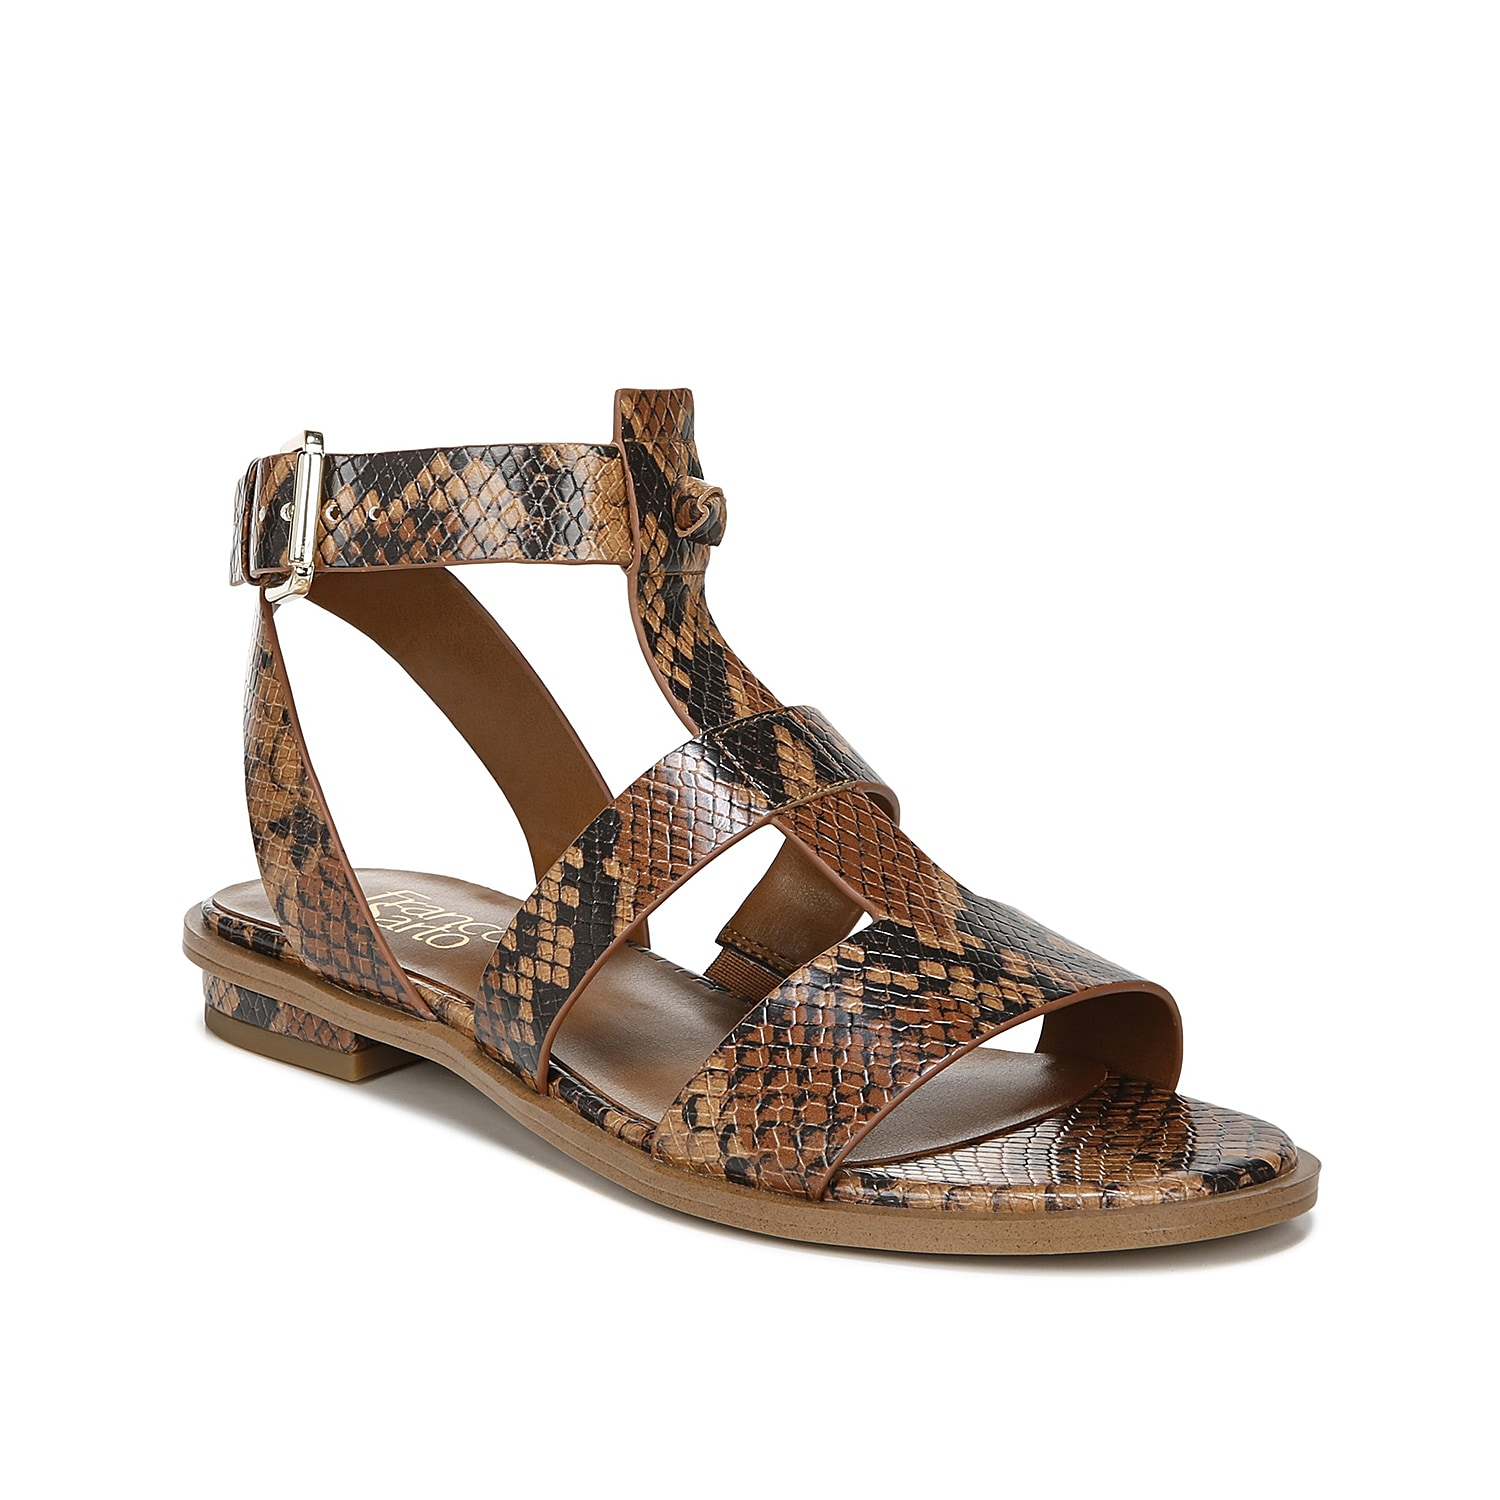 A modern gladiator design, the Moni sandals from Franco Sarto are fitted with an ankle cuff and T-strap upper. A slight heel provides a subtle boost.